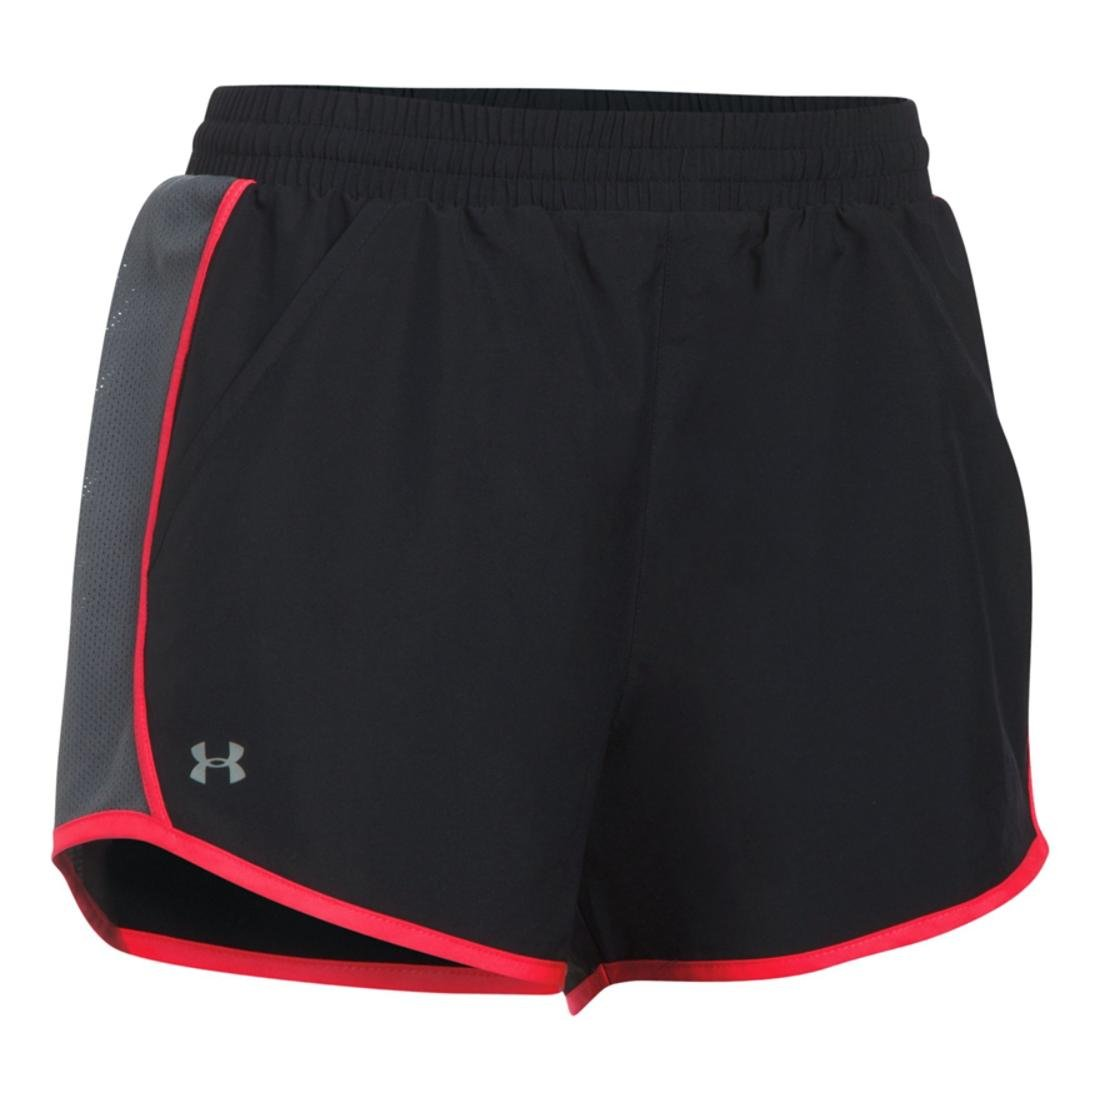 Under Armour Women's Fly-by Shorts Under Armour Apparel 1297125